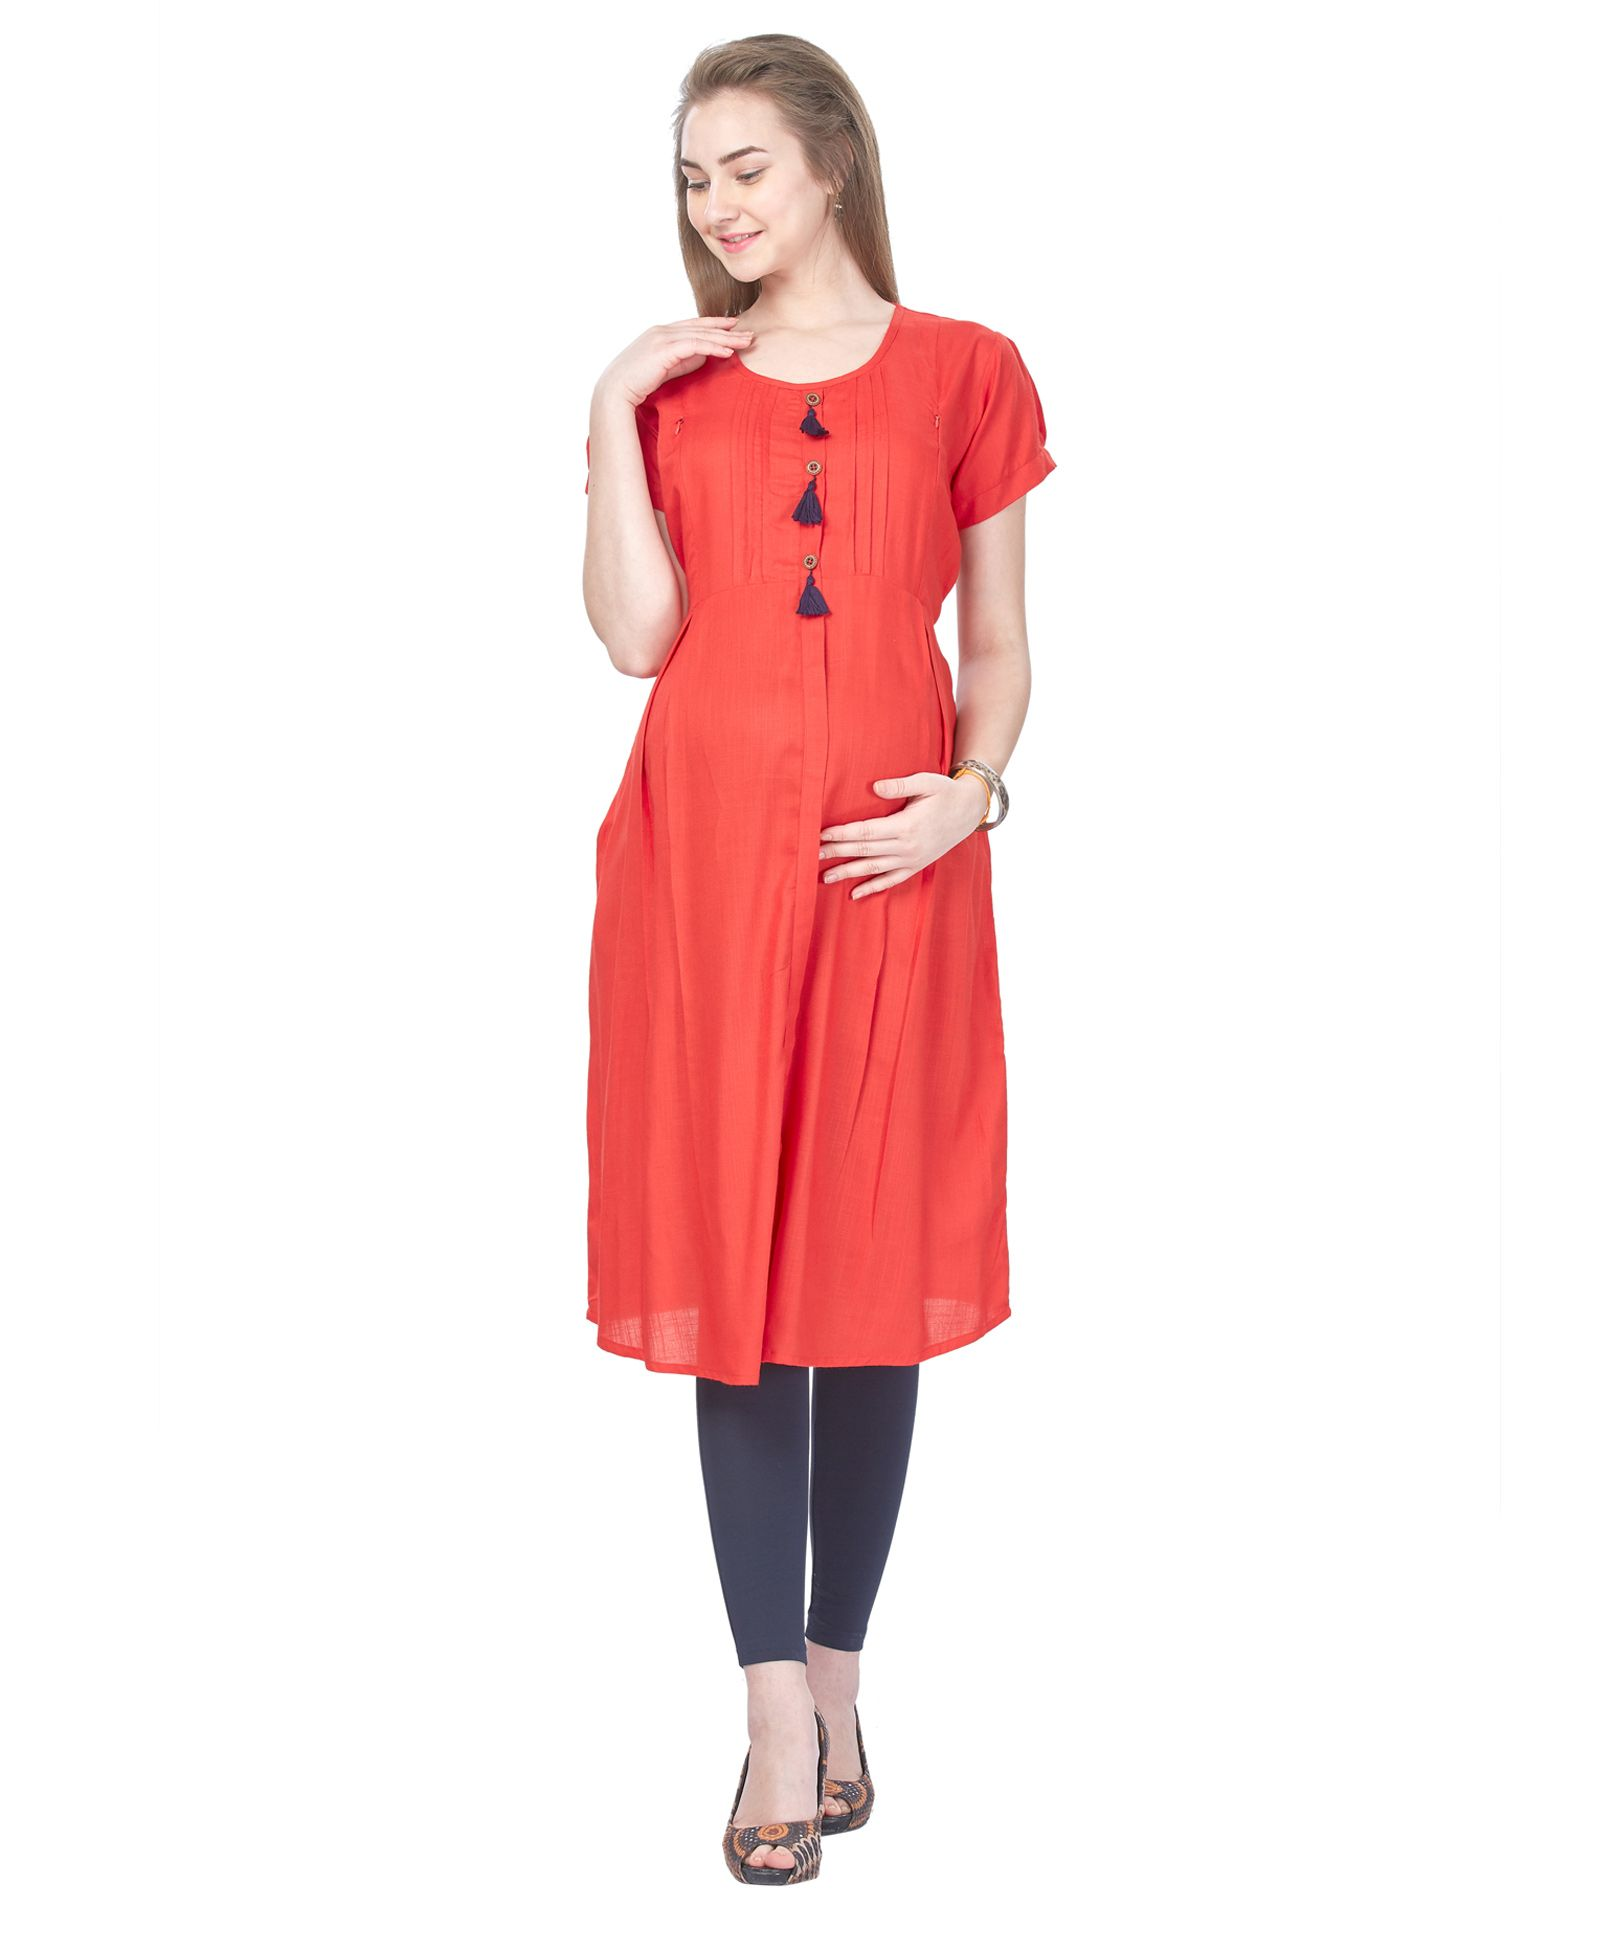 555c7aa5a6f0 MomToBe Short Sleeves Rayon Maternity Dress Red Online in India ...